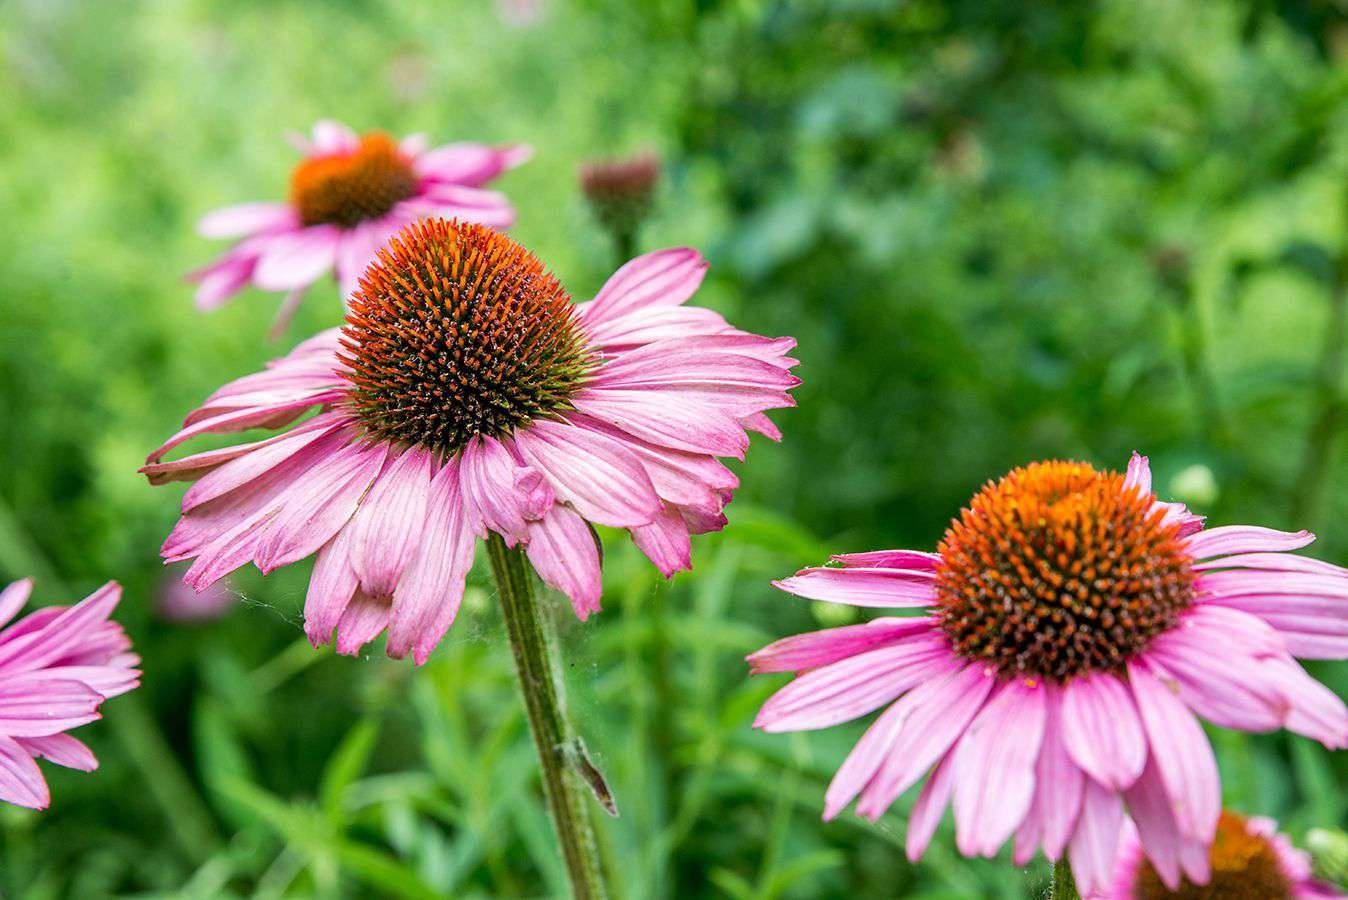 Coneflower plant with pink daisy-like flowers with orange cone-shaped centers closeup